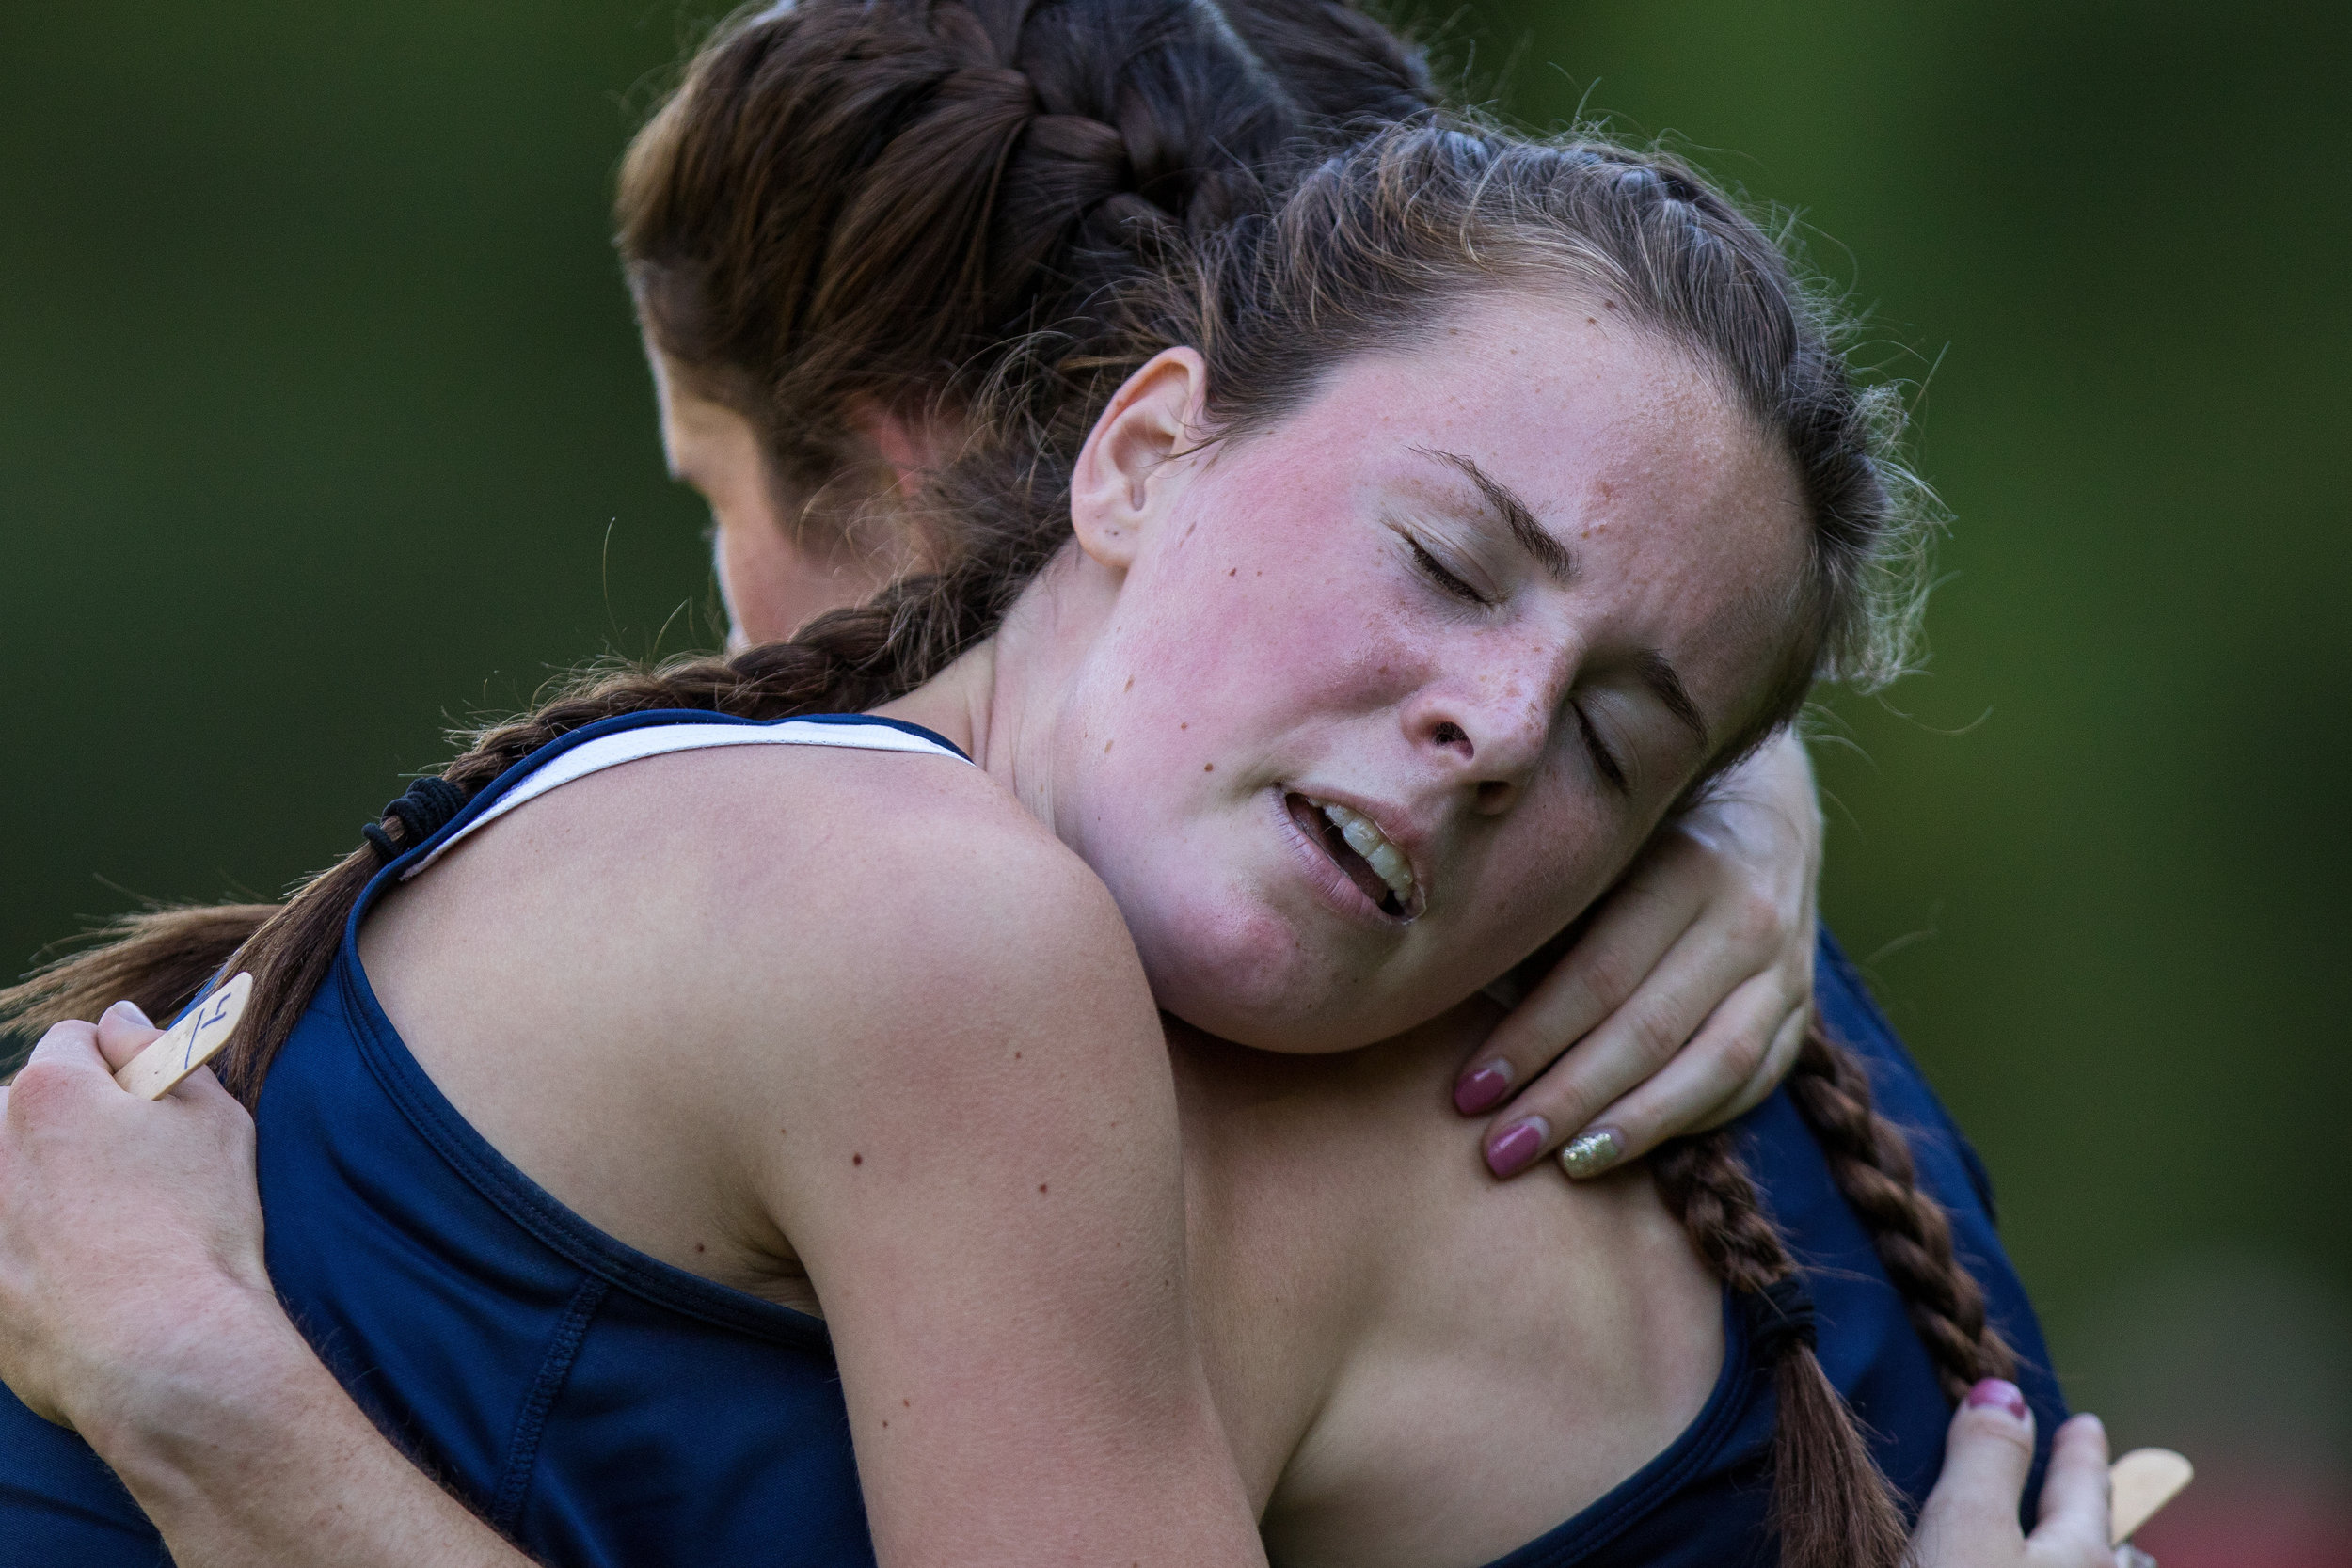 Lauren McCoy, right and Carinna Lapson both of Hopewell High School embrace after they both crossed the finish line of the women cross county meet at Hopewell Community Park on Tuesday afternoon. McCoy and Lapson won third and fourth place, with times of 21:17 and 21:31 respectively.